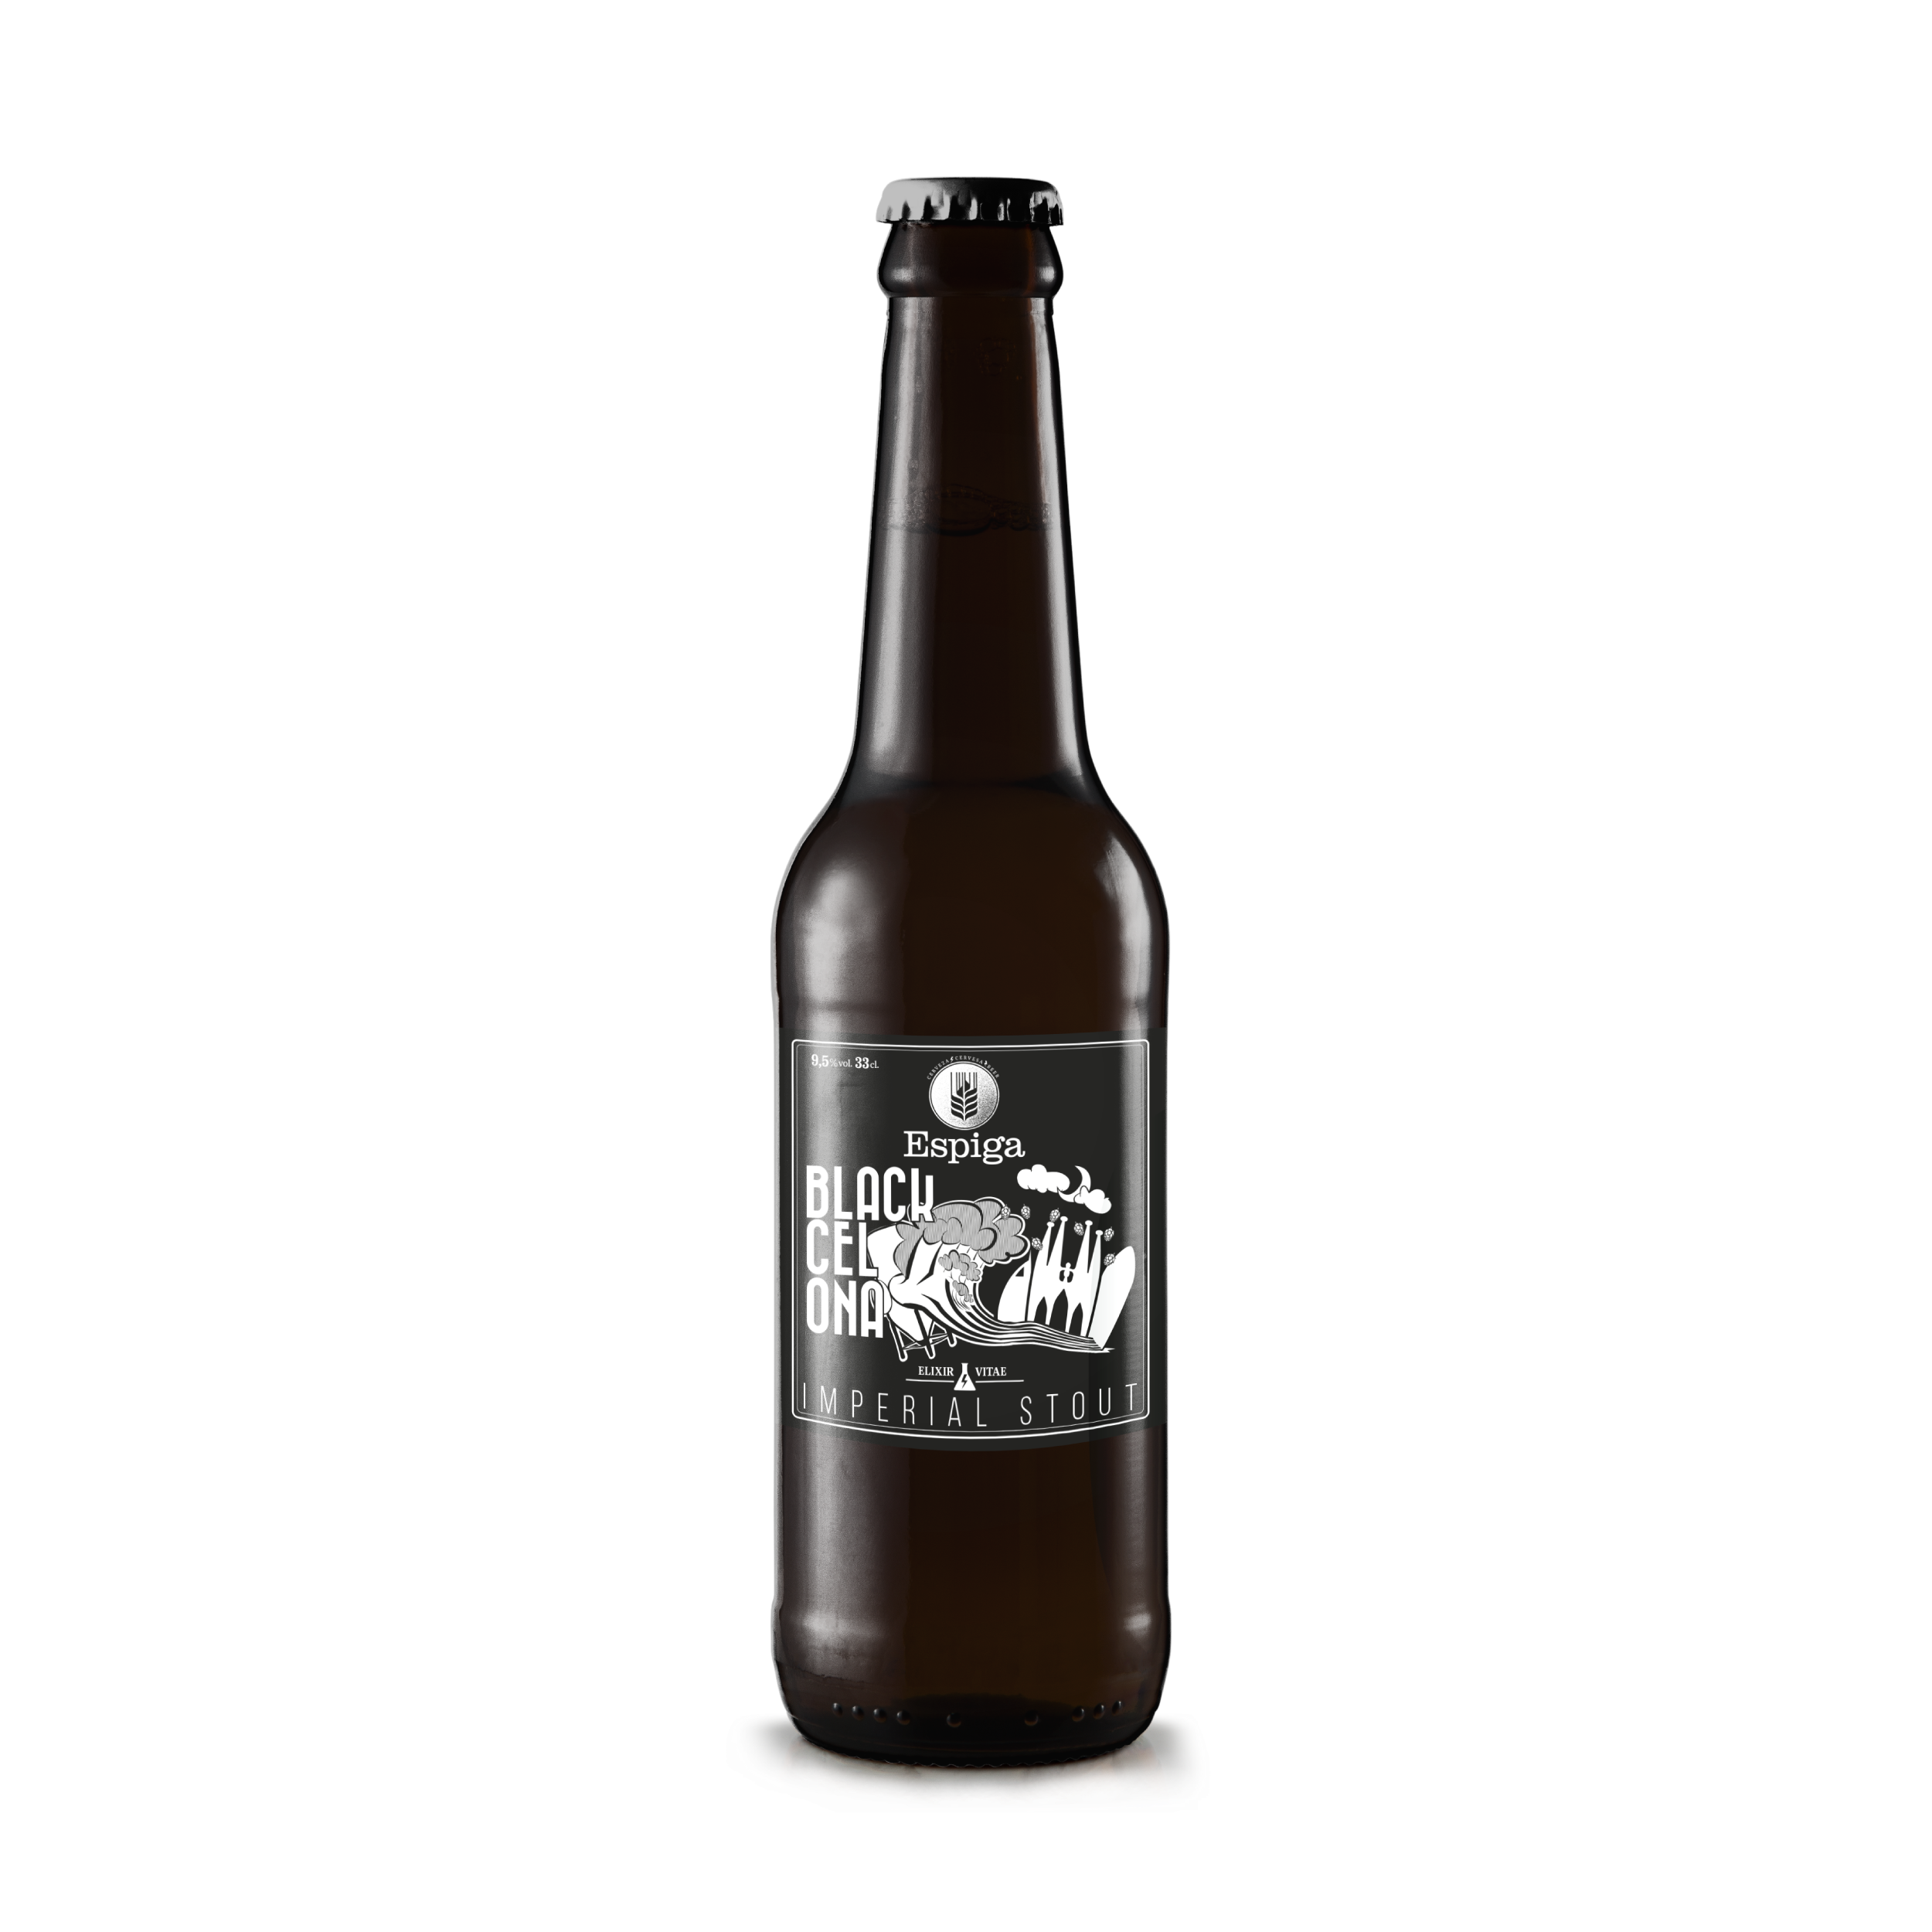 https://www.espiga.cat/wp-content/uploads/2019/09/BLACK-CEL-ONA-IMPERIAL-STOUT.png